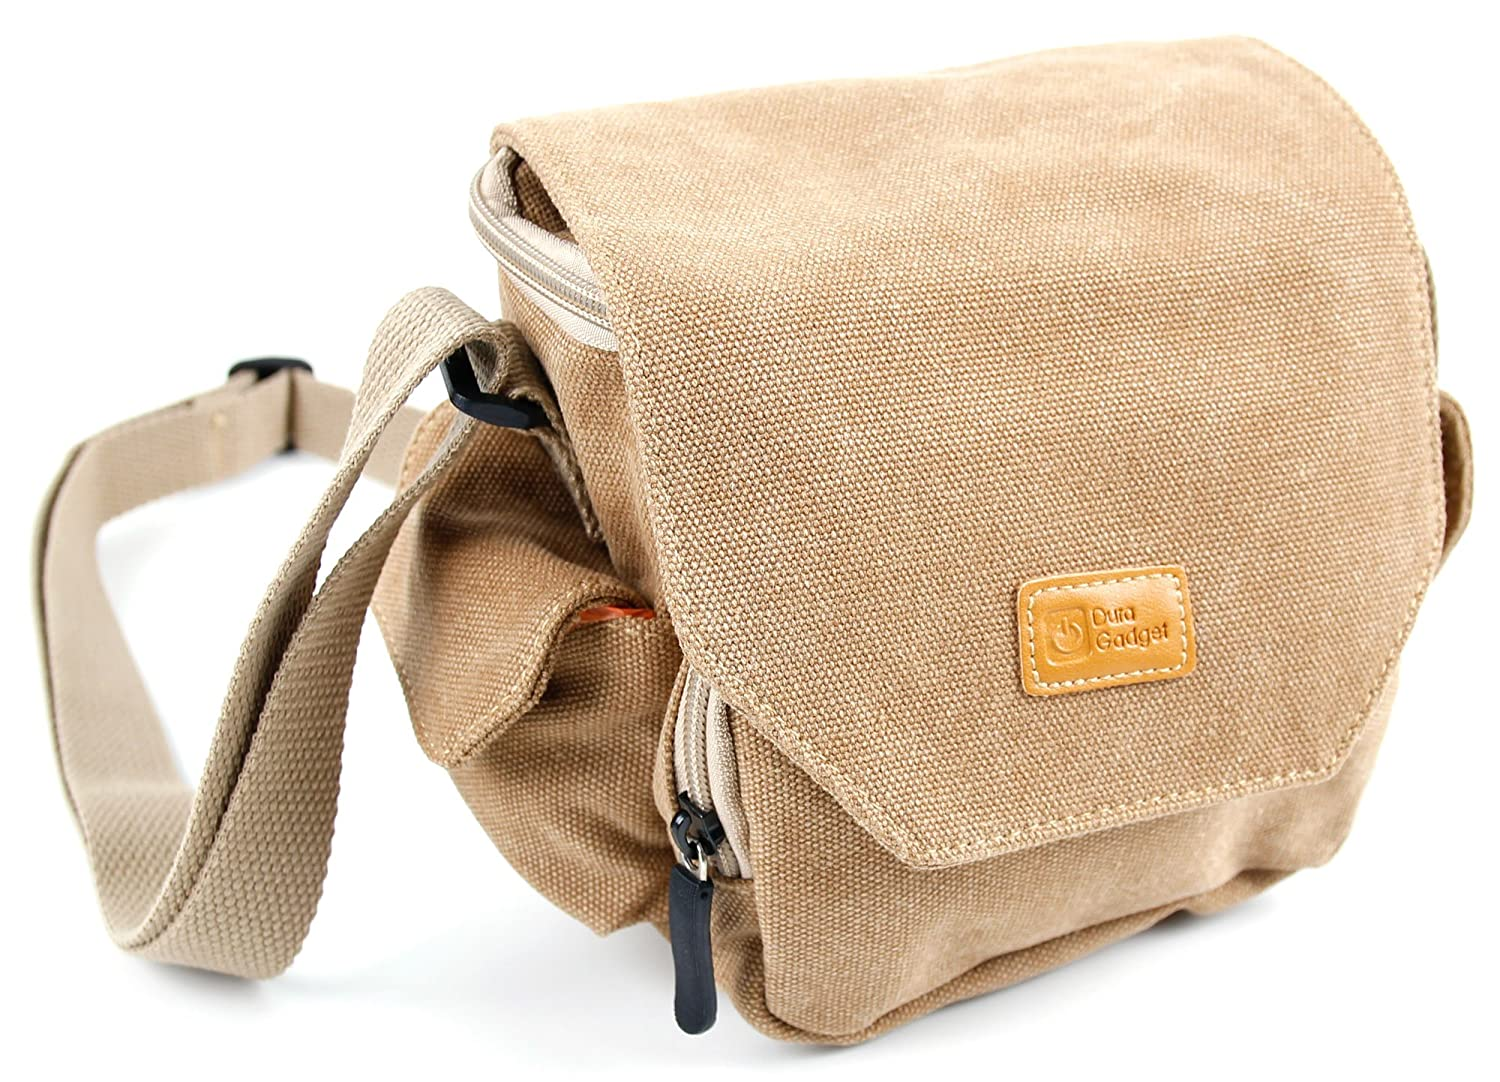 DURAGADGET tan-brown中サイズキャンバスCarry Bag for the GizmoVine ge-bs0073-u-5 Altoparlante Multicolore PORTATILE Bluetoothワイヤレス B01HY0OSWY